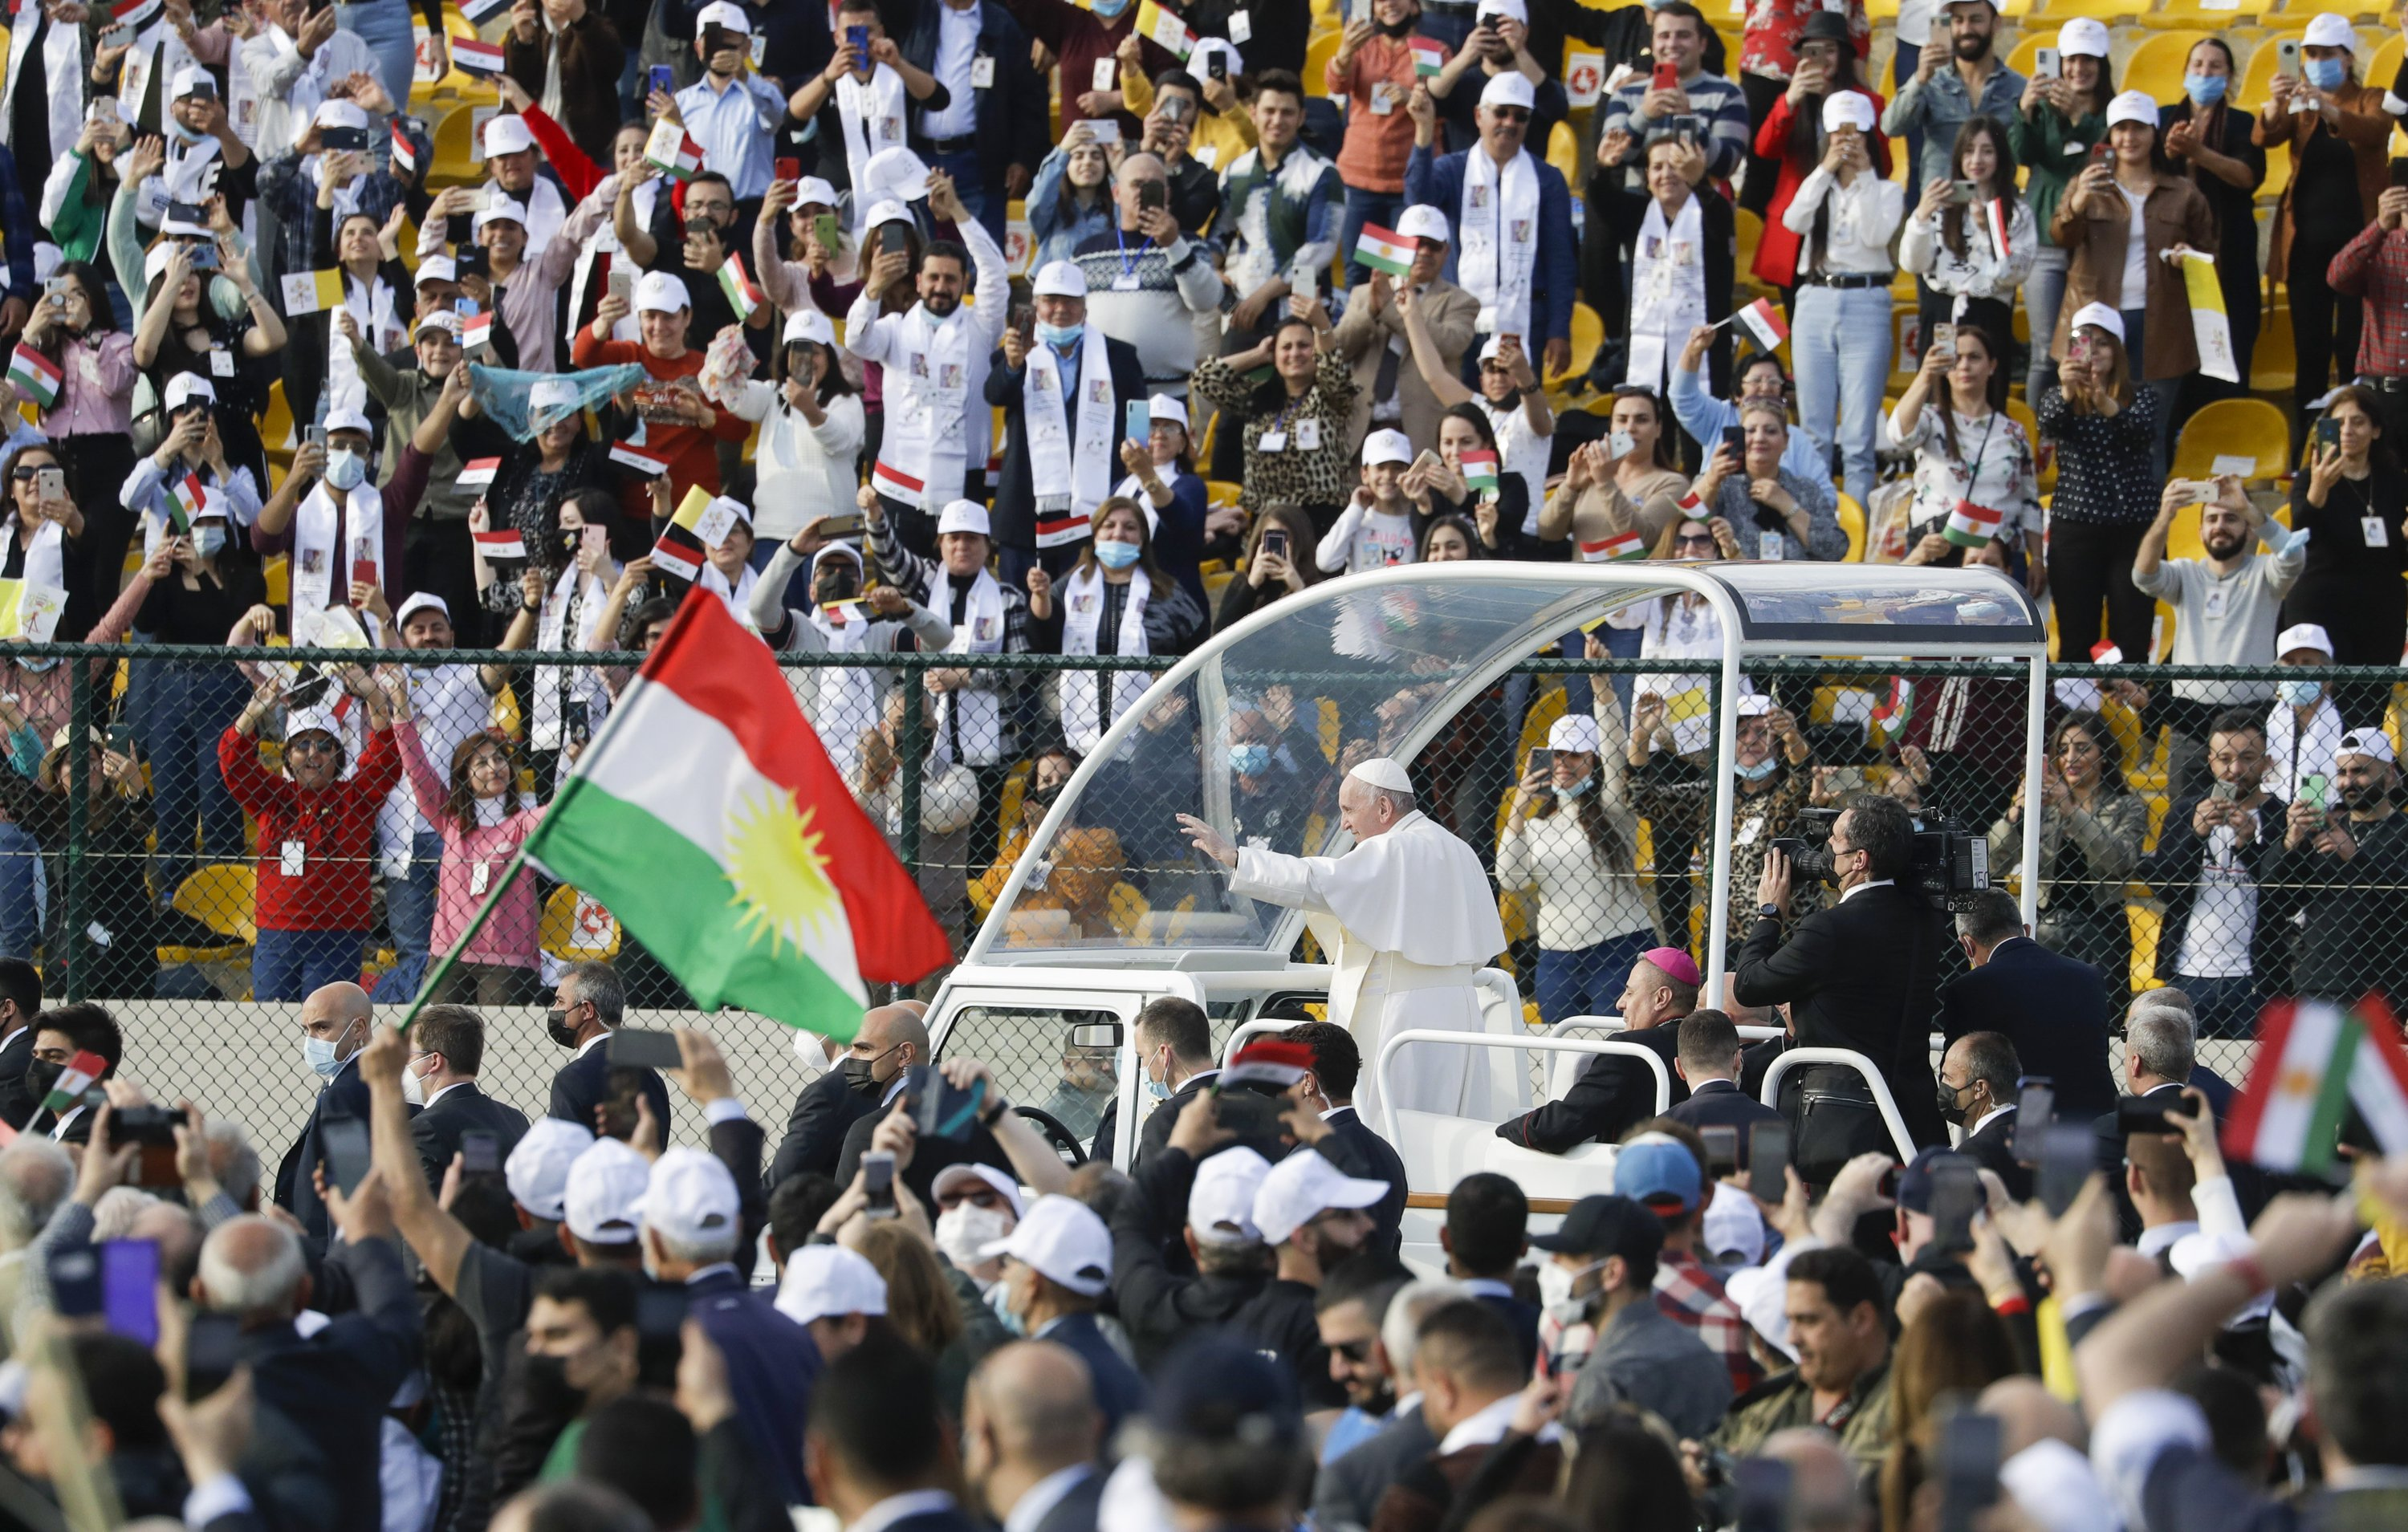 Where IS ruled, pope calls on Christians to forgive, rebuild - The Associated Press